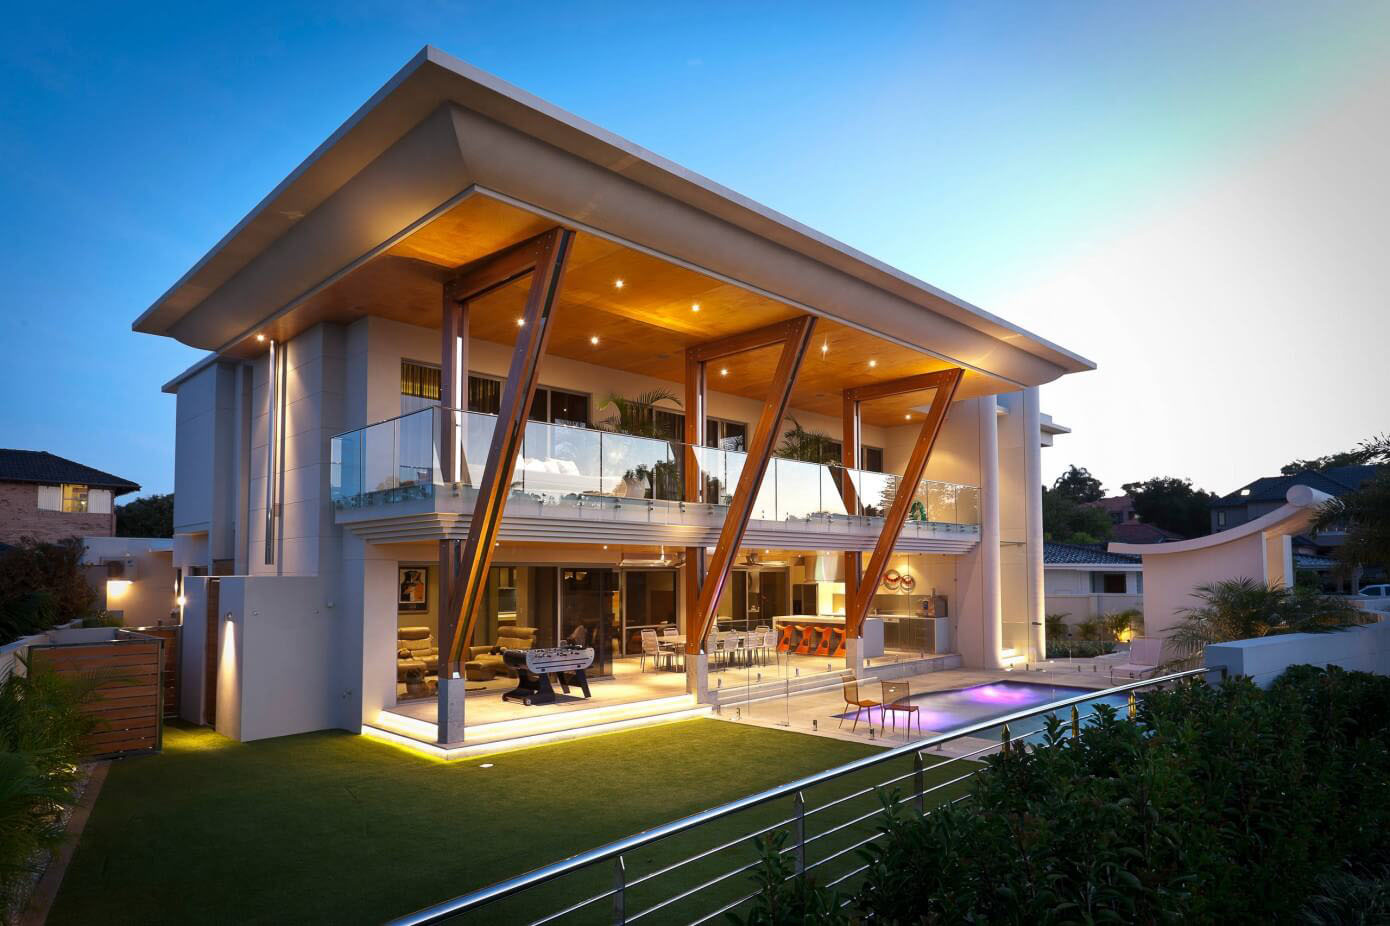 Ultra Modern Home In Perth With Large Roof | iDesignArch ...